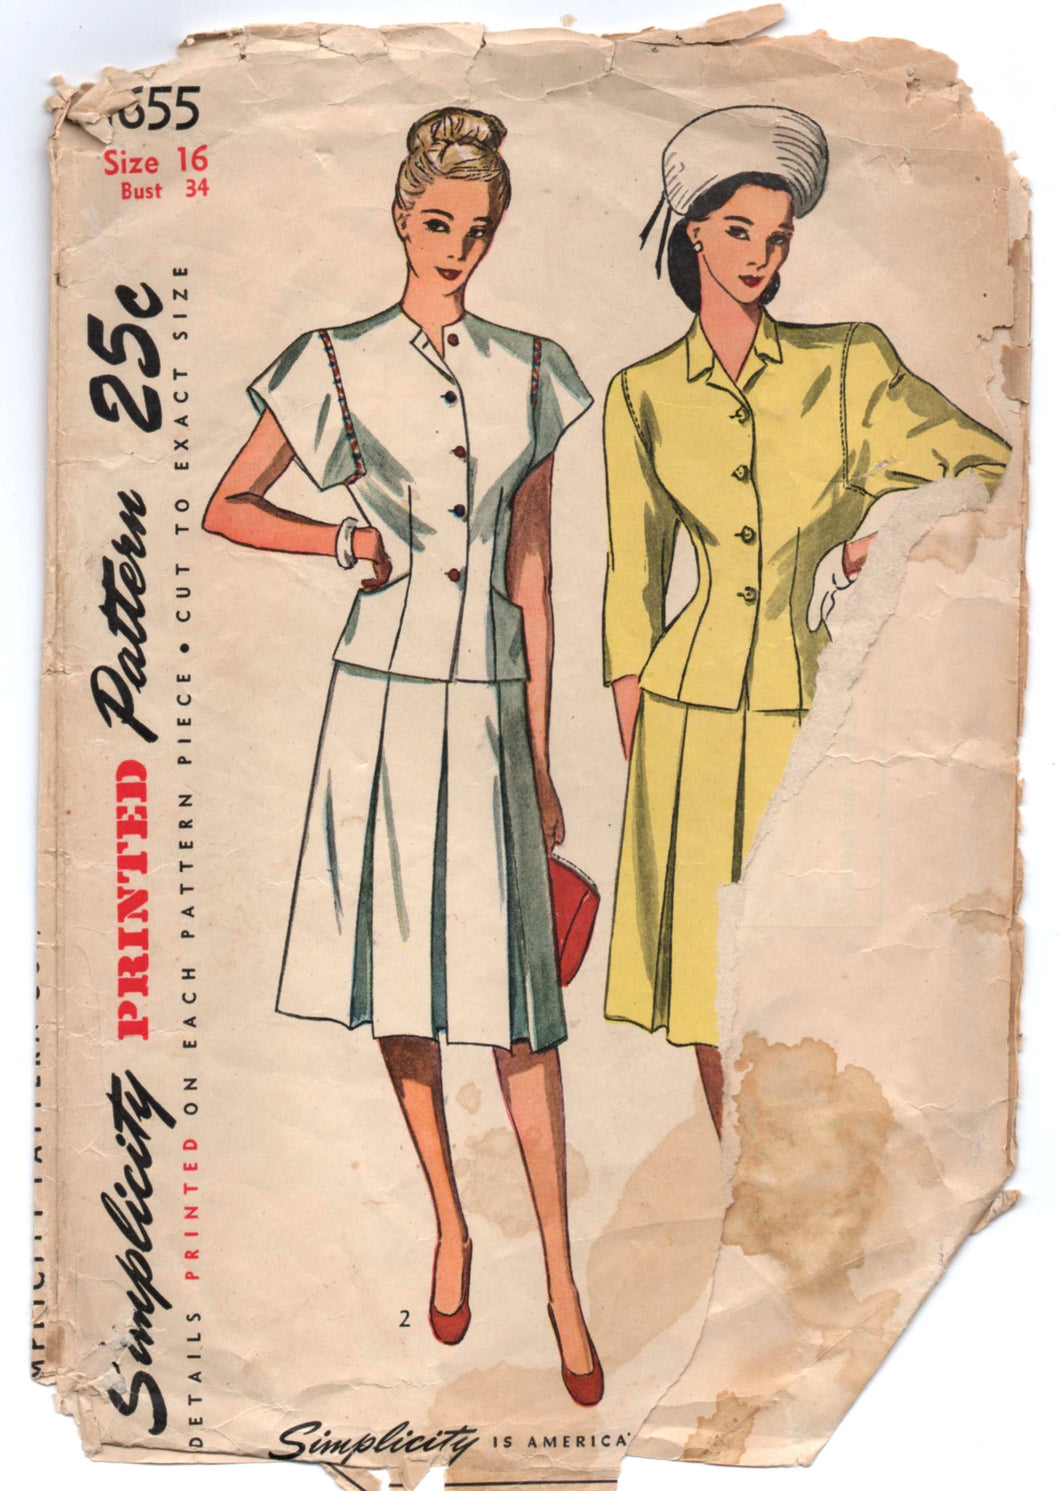 1940's Simplicity Two Piece Dress or Suit Pattern with wide sleeves - Bust 34